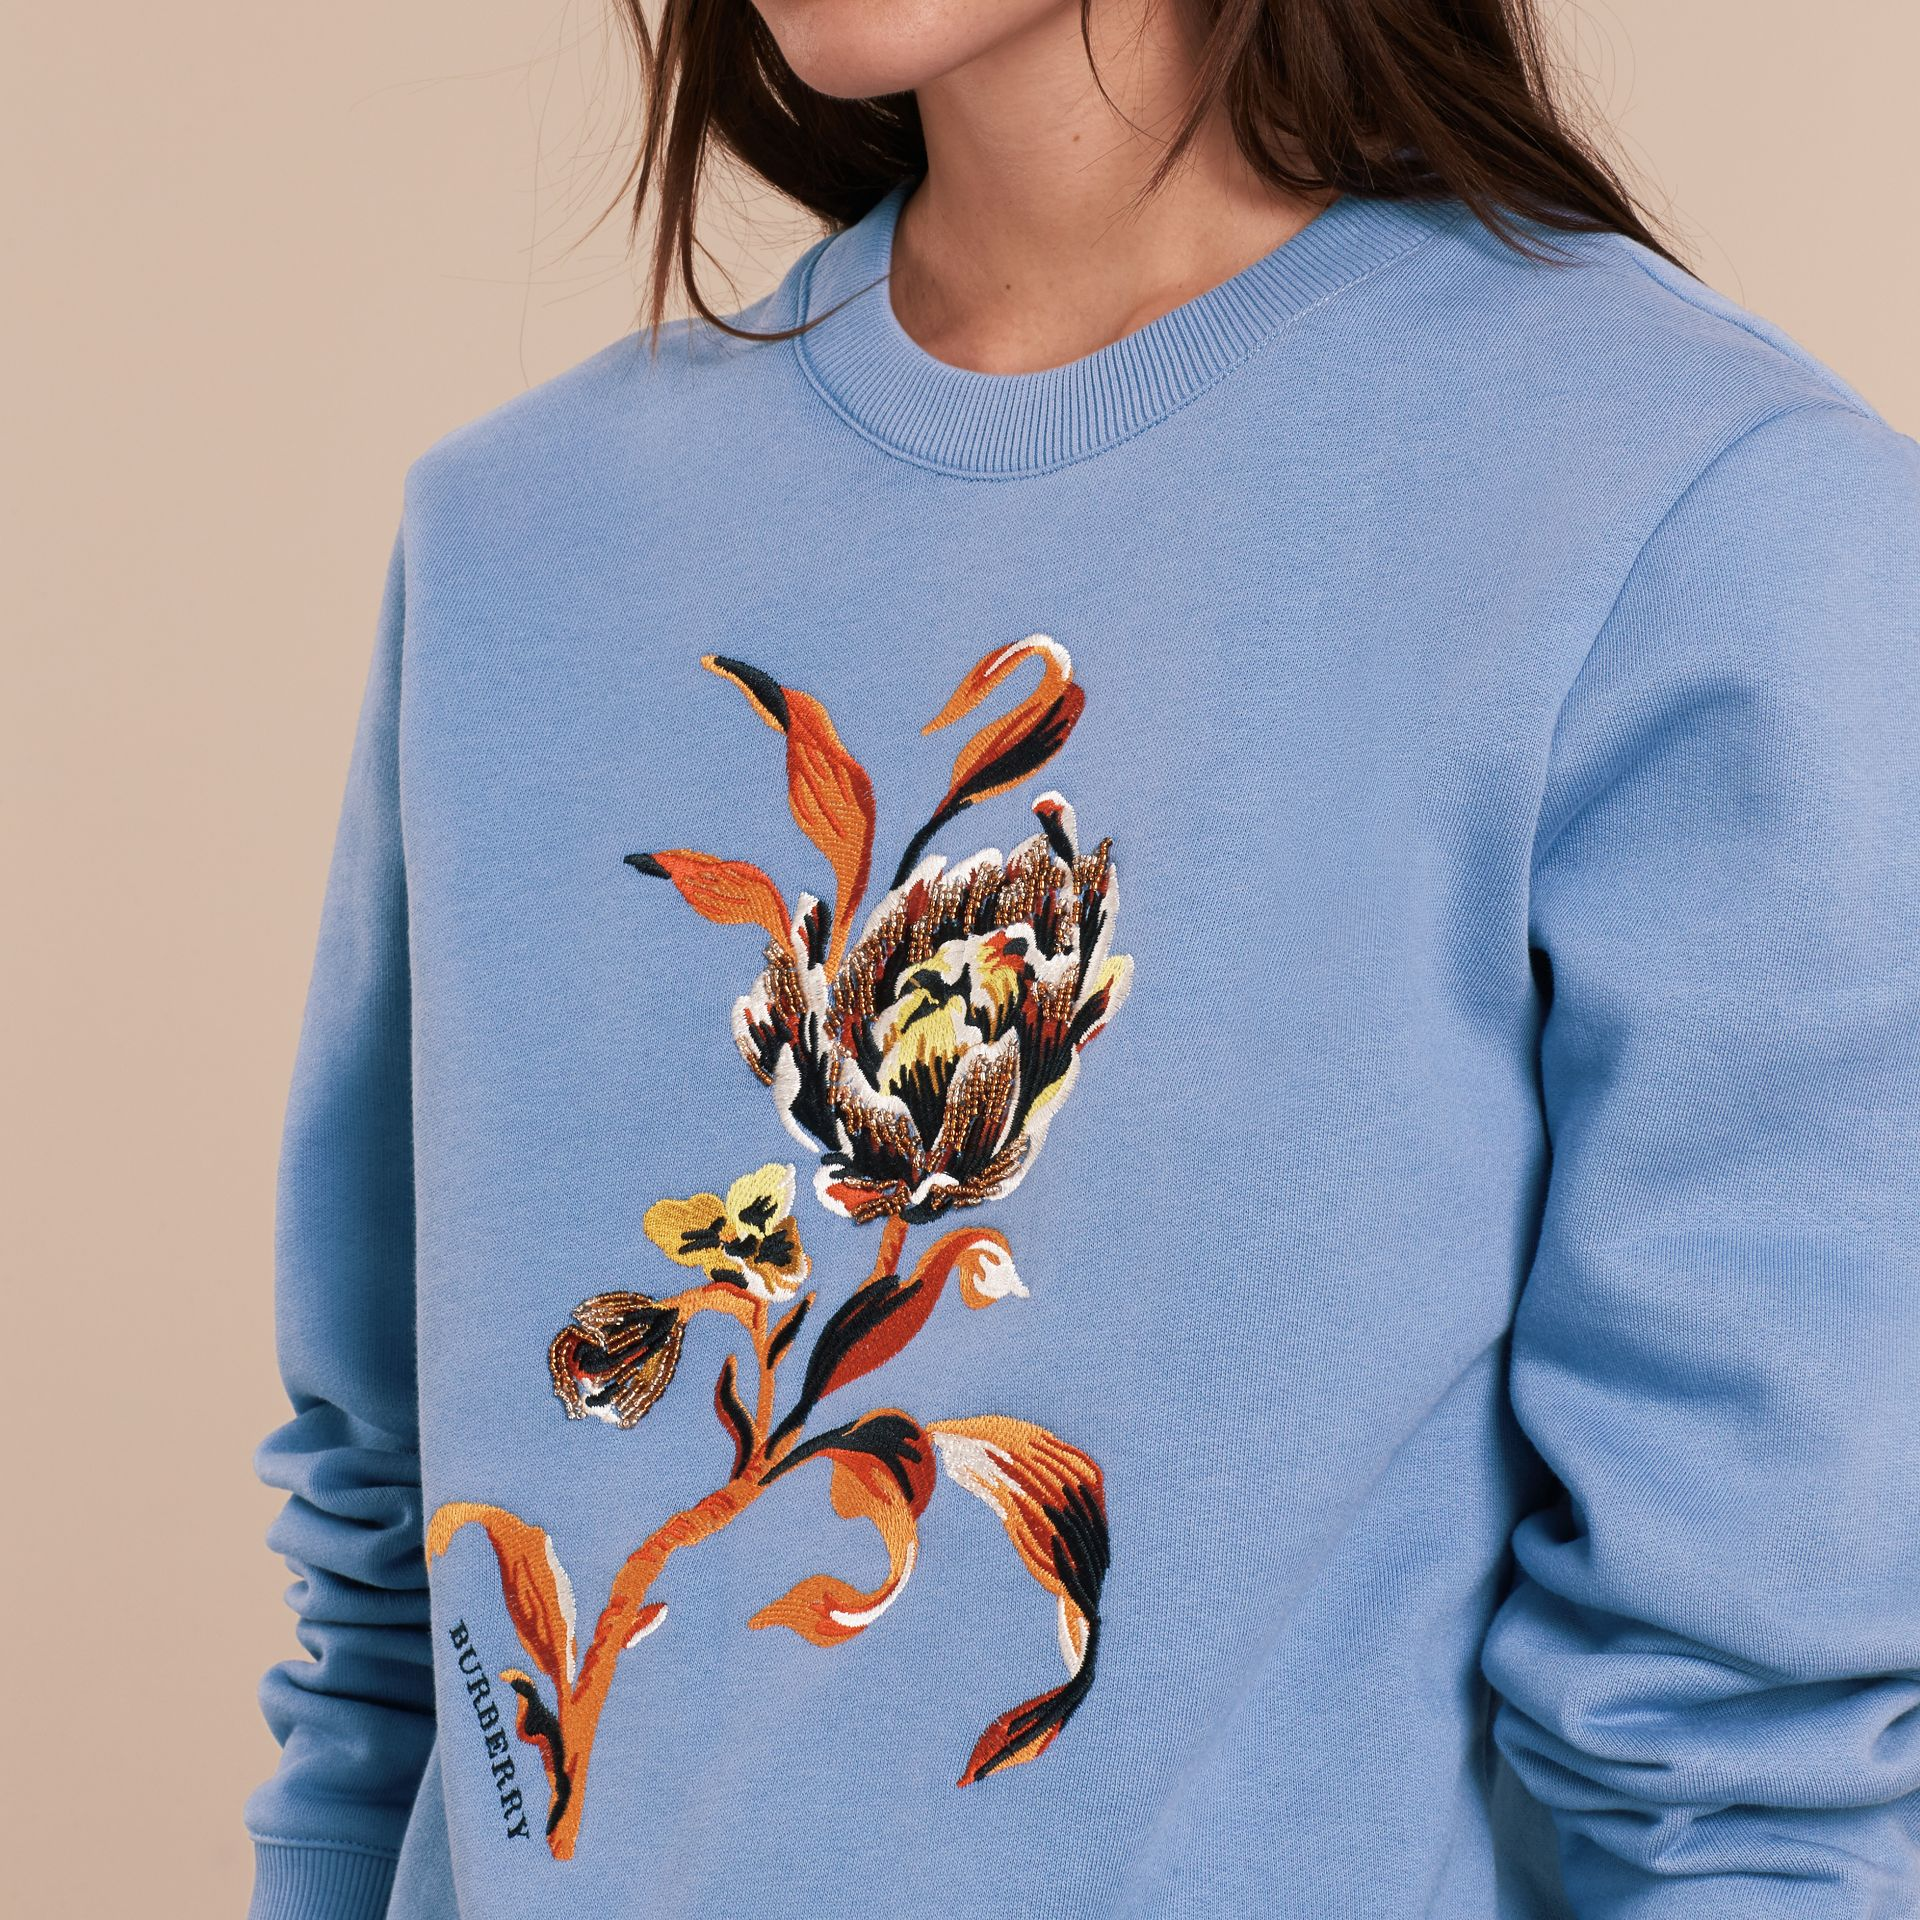 Pale hydrangea blue Embroidered Floral Motif Cotton Blend Sweatshirt Pale Hydrangea Blue - gallery image 5